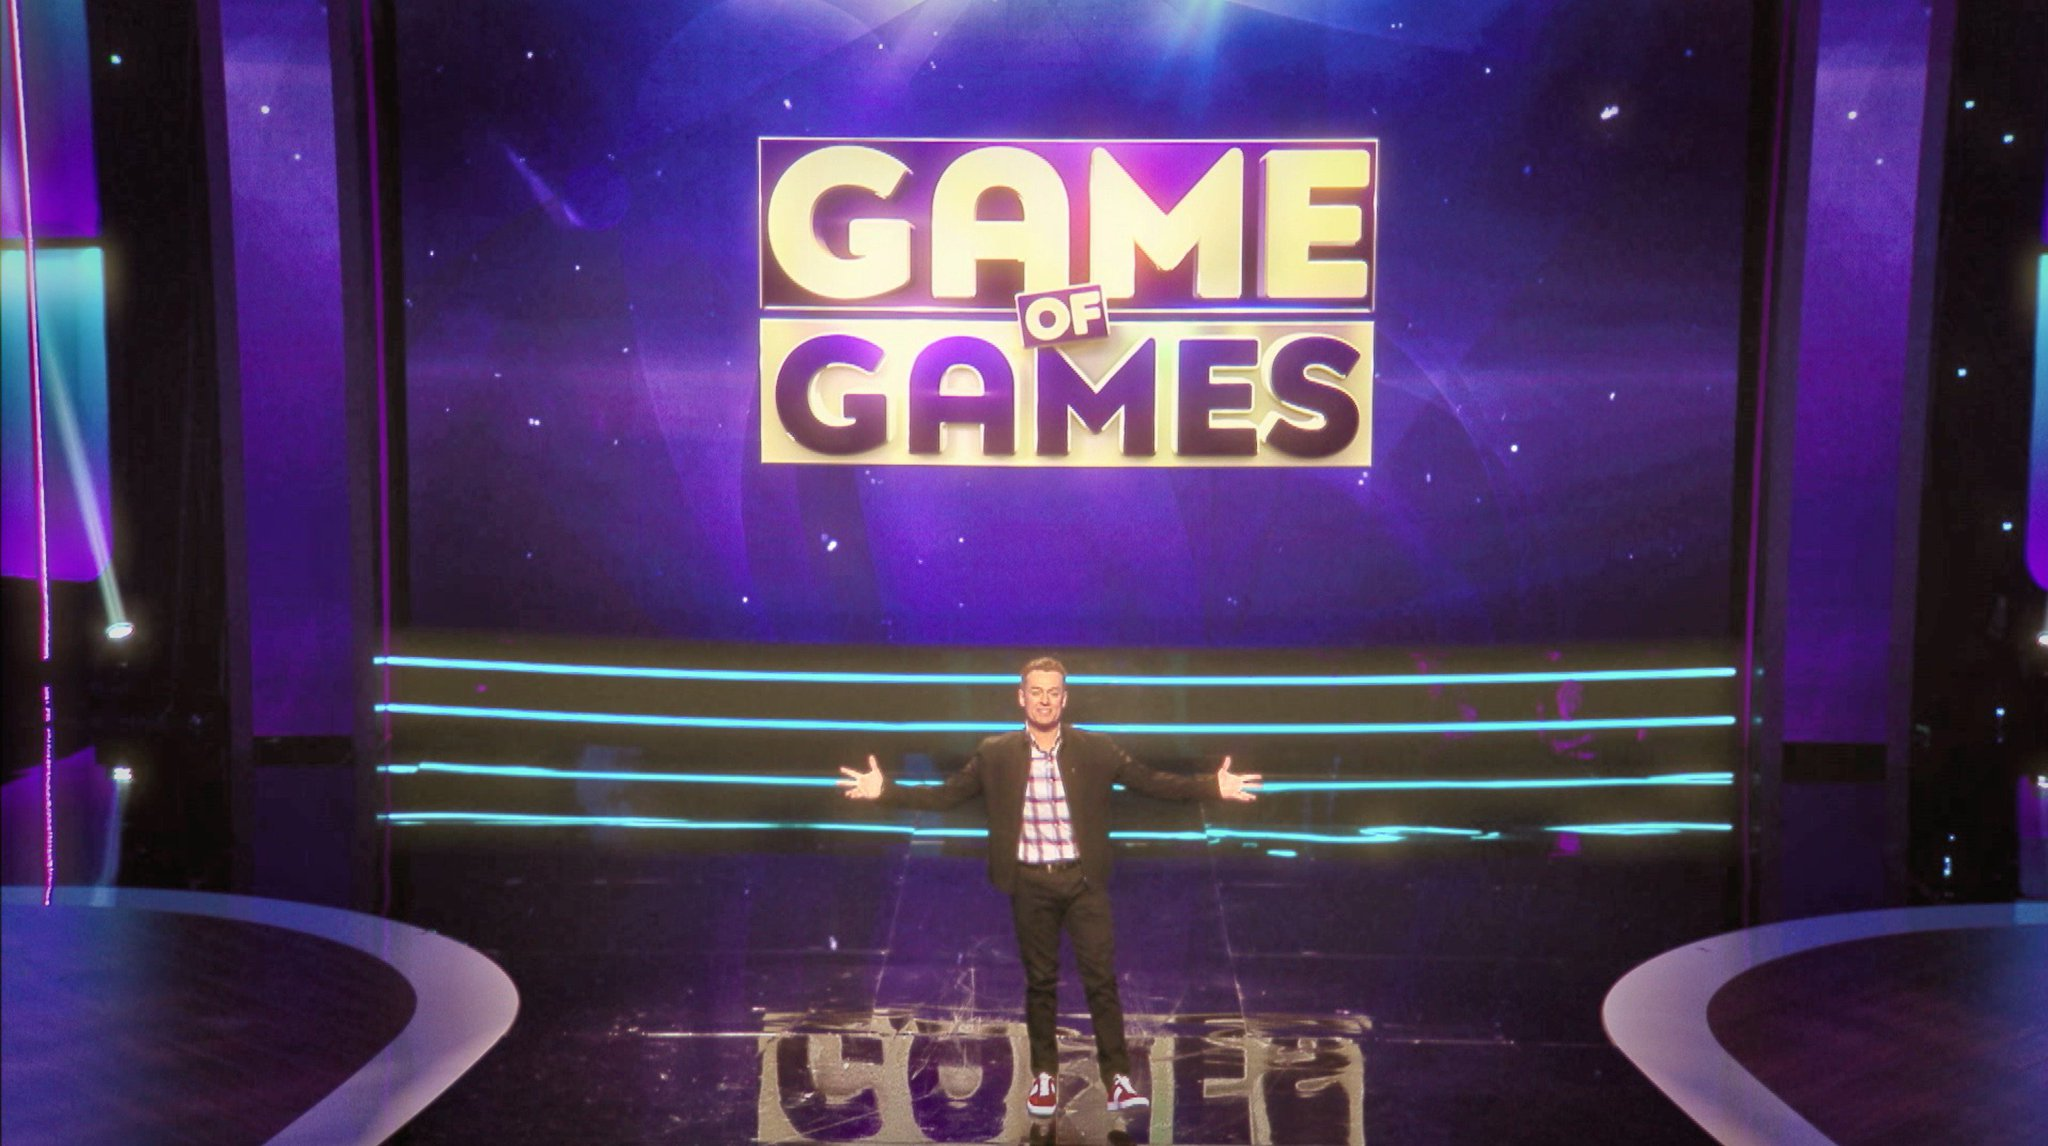 G'day, Australia! I'm handing #GameOfGames over to @GrantDenyer. Don't miss it this Sunday, 7:30PM! @GameOfGamesAU https://t.co/eDoeqmUDL2